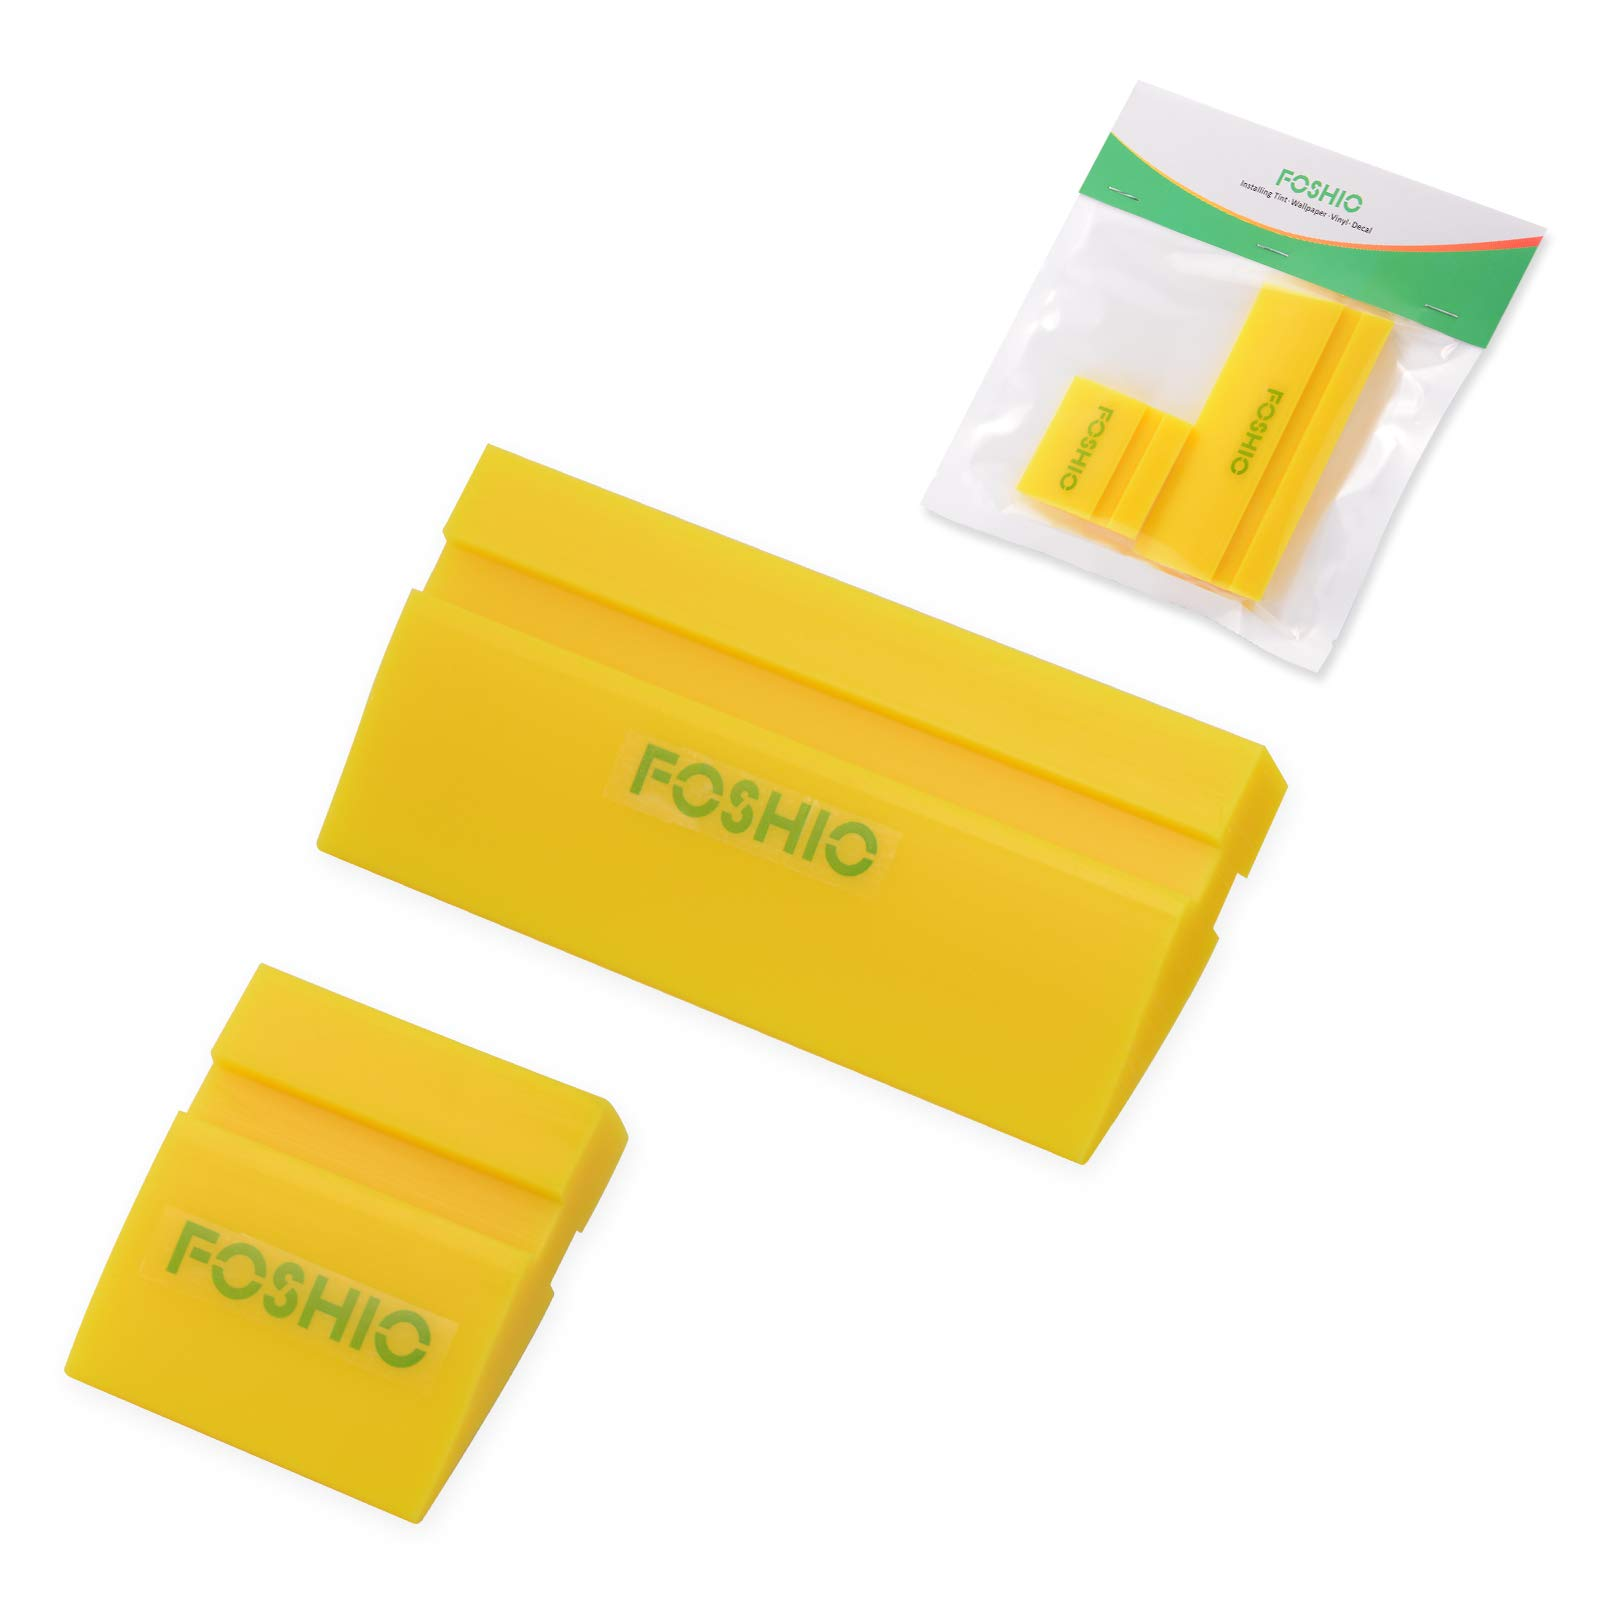 Turbo Squeegee Window Film Tools Tube Rubber Scraper Silicone Water Blade Decal Wrap Applicator Car Home Tint Flexible Ehdis 5.5inch 14cm